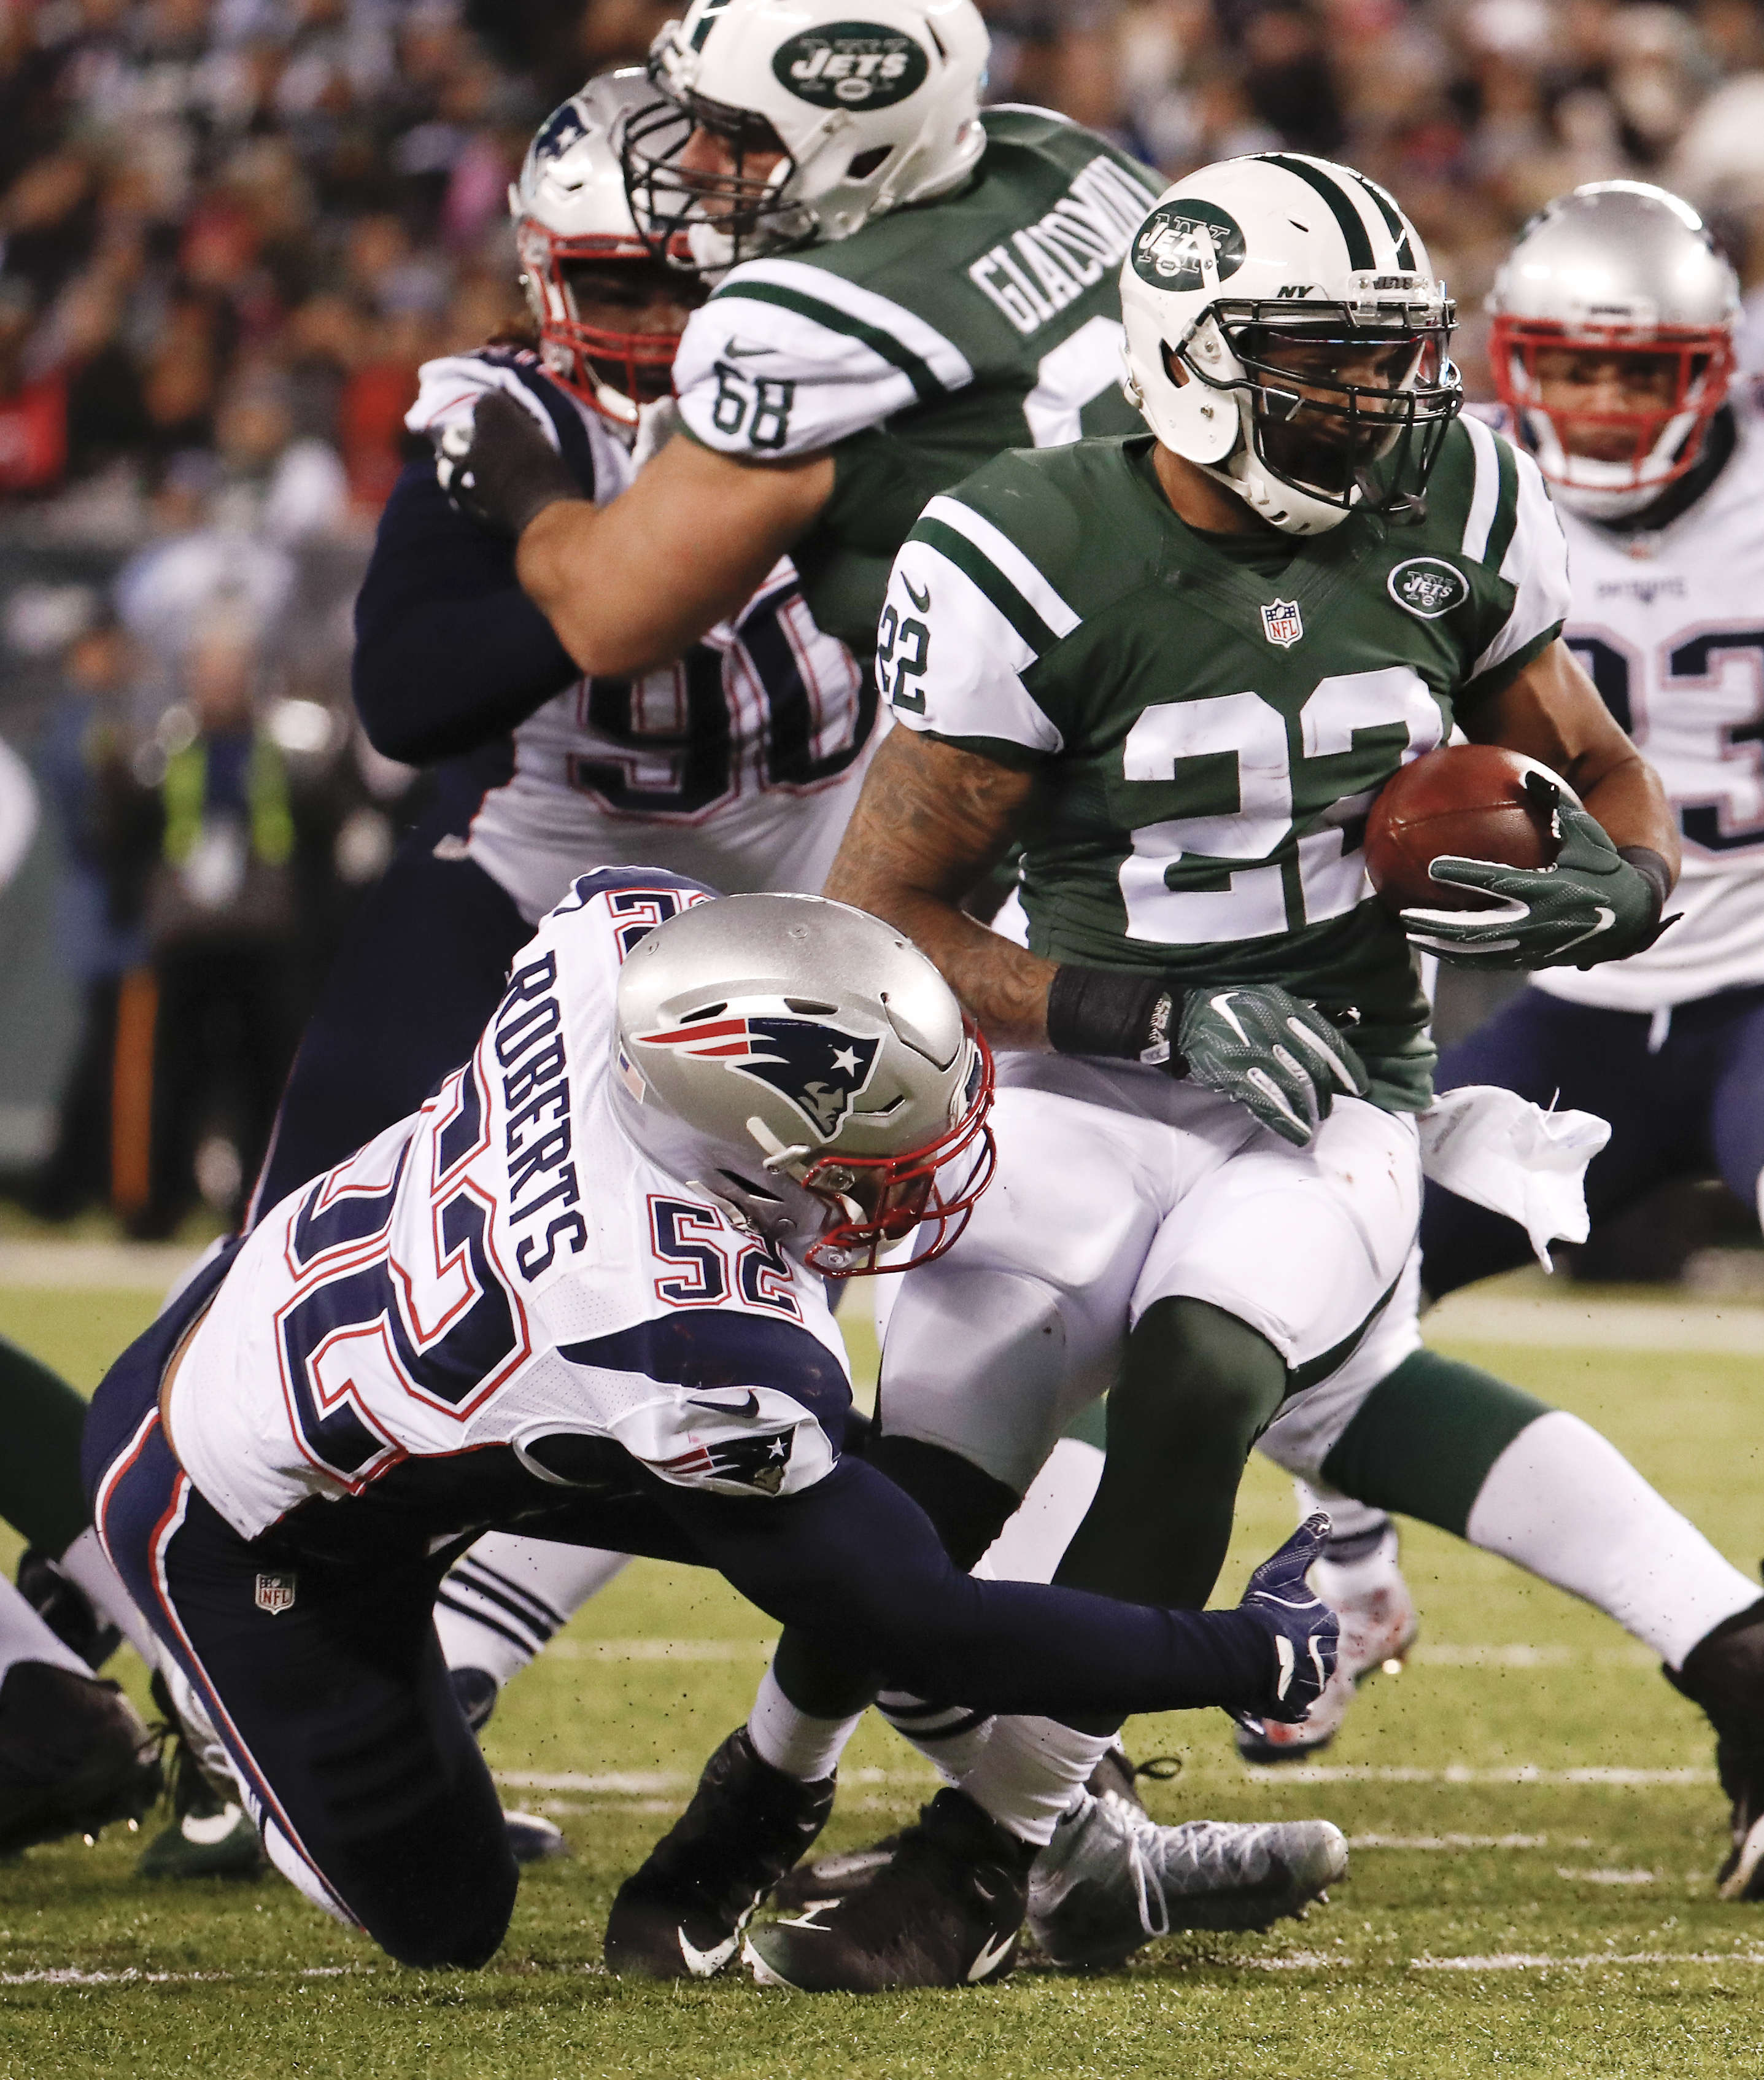 New York Jets running back Matt Forte (22) is tackled by New York Jets middle linebacker David Harris (52) during the first quarter of an NFL football game, Sunday, Nov. 27, 2016, in East Rutherford, N.J. (AP Photo/Julio Cortez)